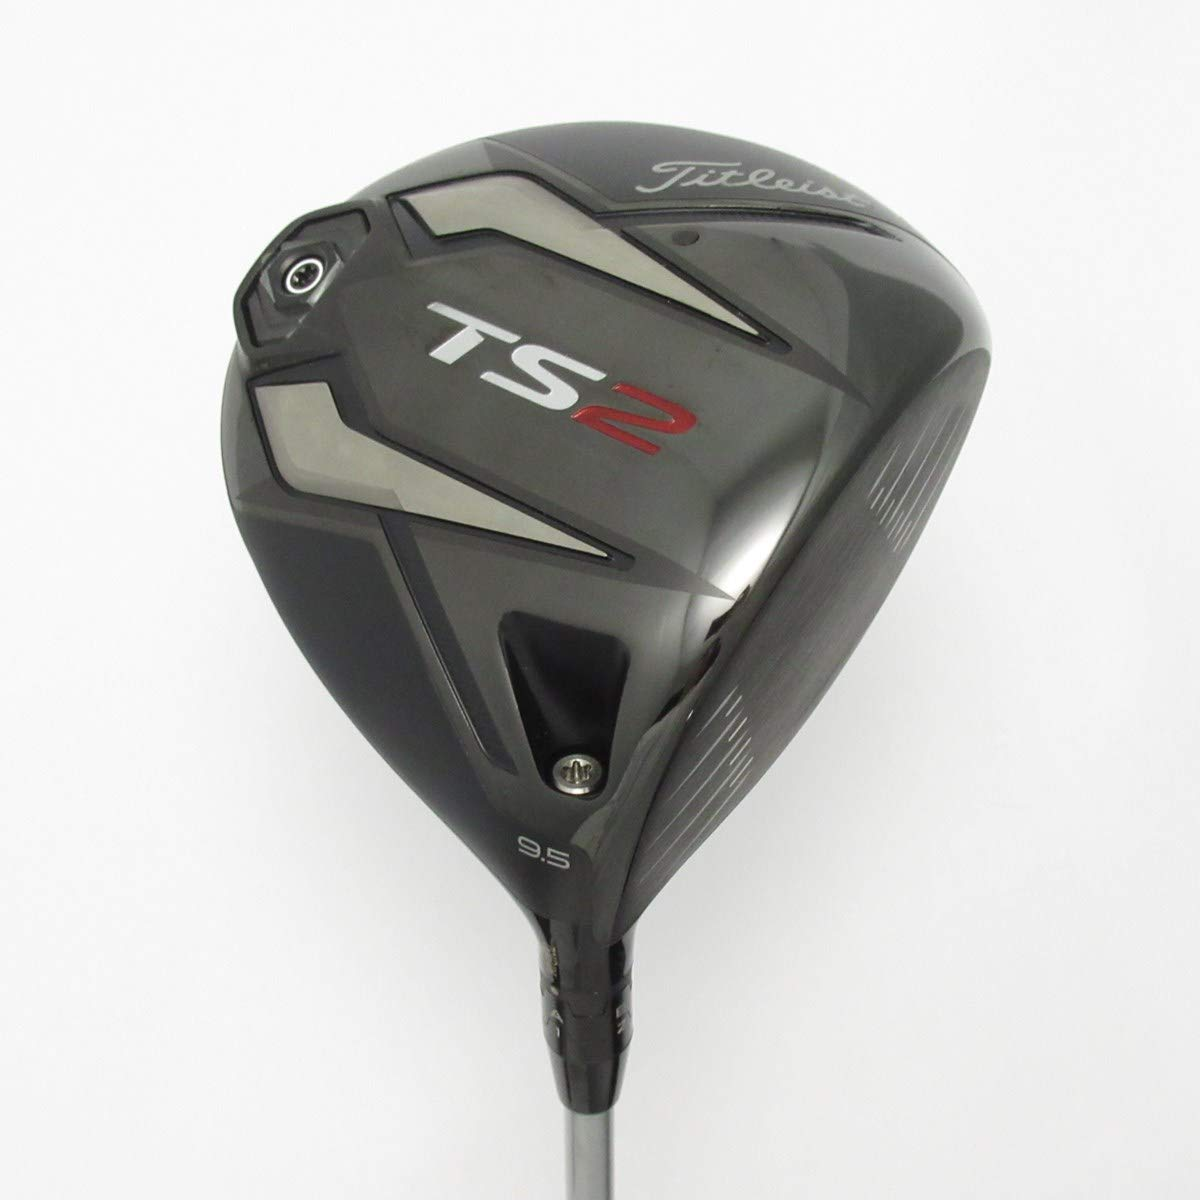 【中古】タイトリスト TITLEIST TS2 ドライバー Titleist Speeder 519 Evolution B07T5XVCDB  S